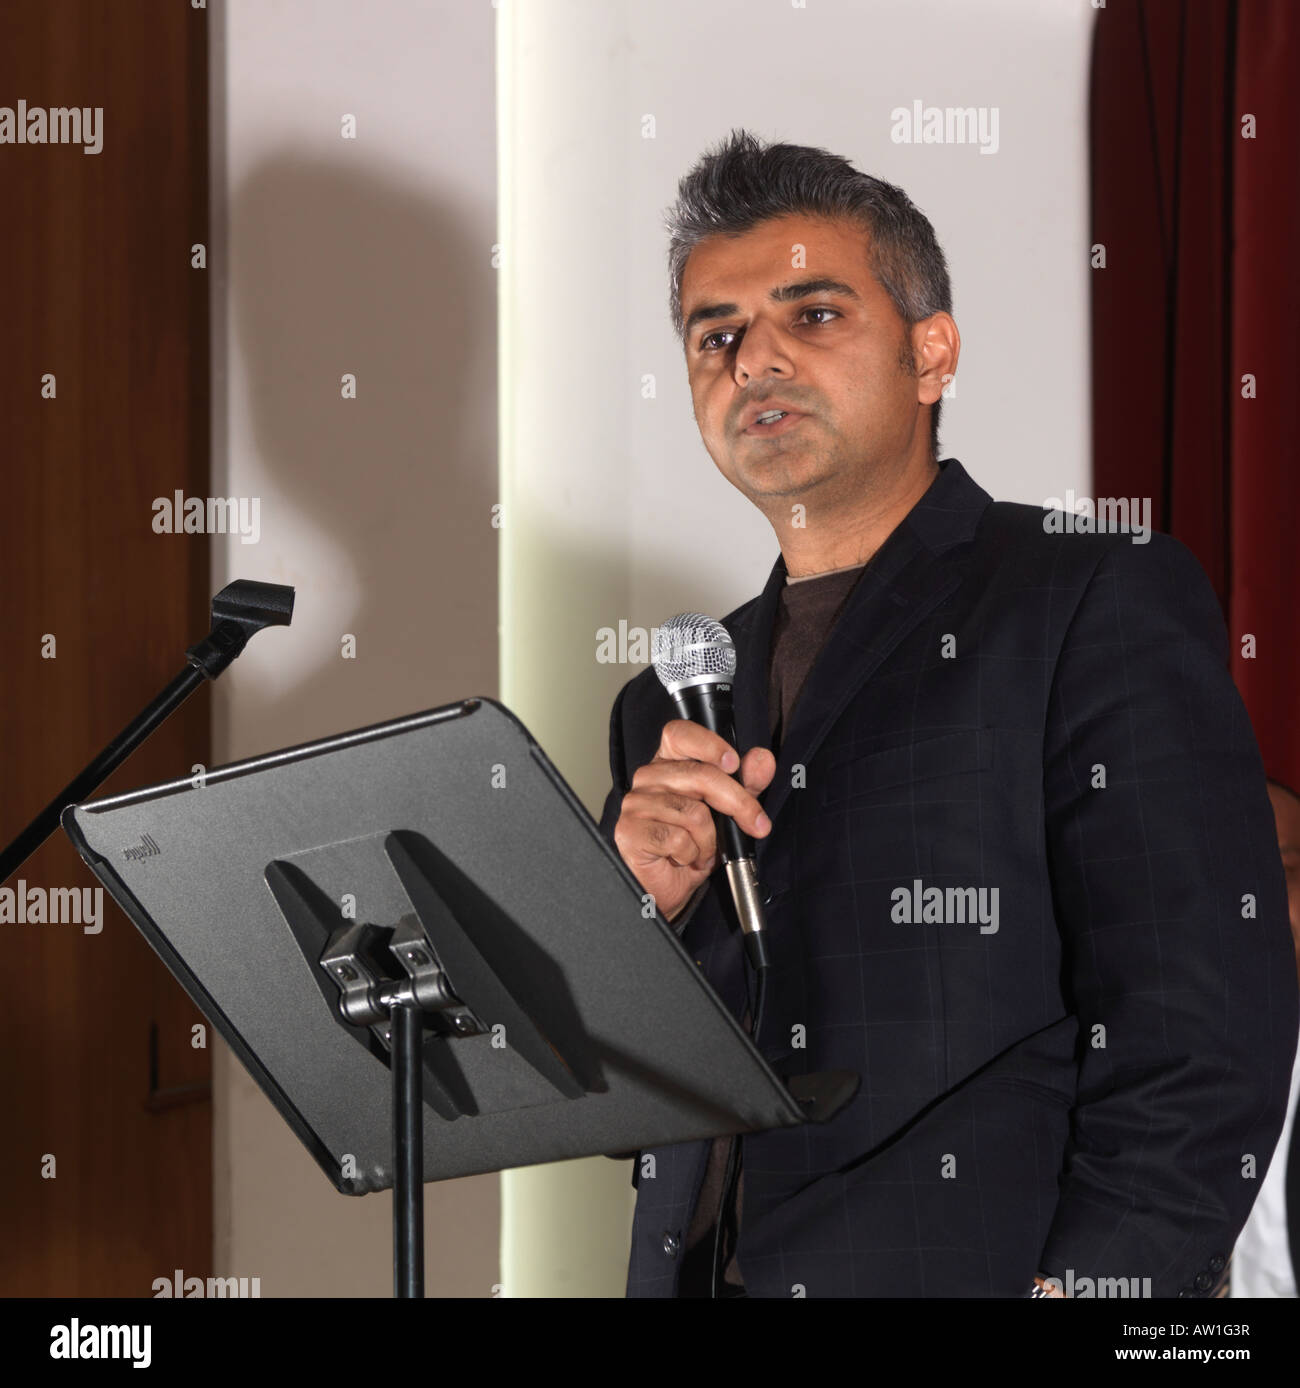 Diwali Wandswoth Town Hall London Sadiq Khan MP for Tooting on Stage with Microphone - Stock Image